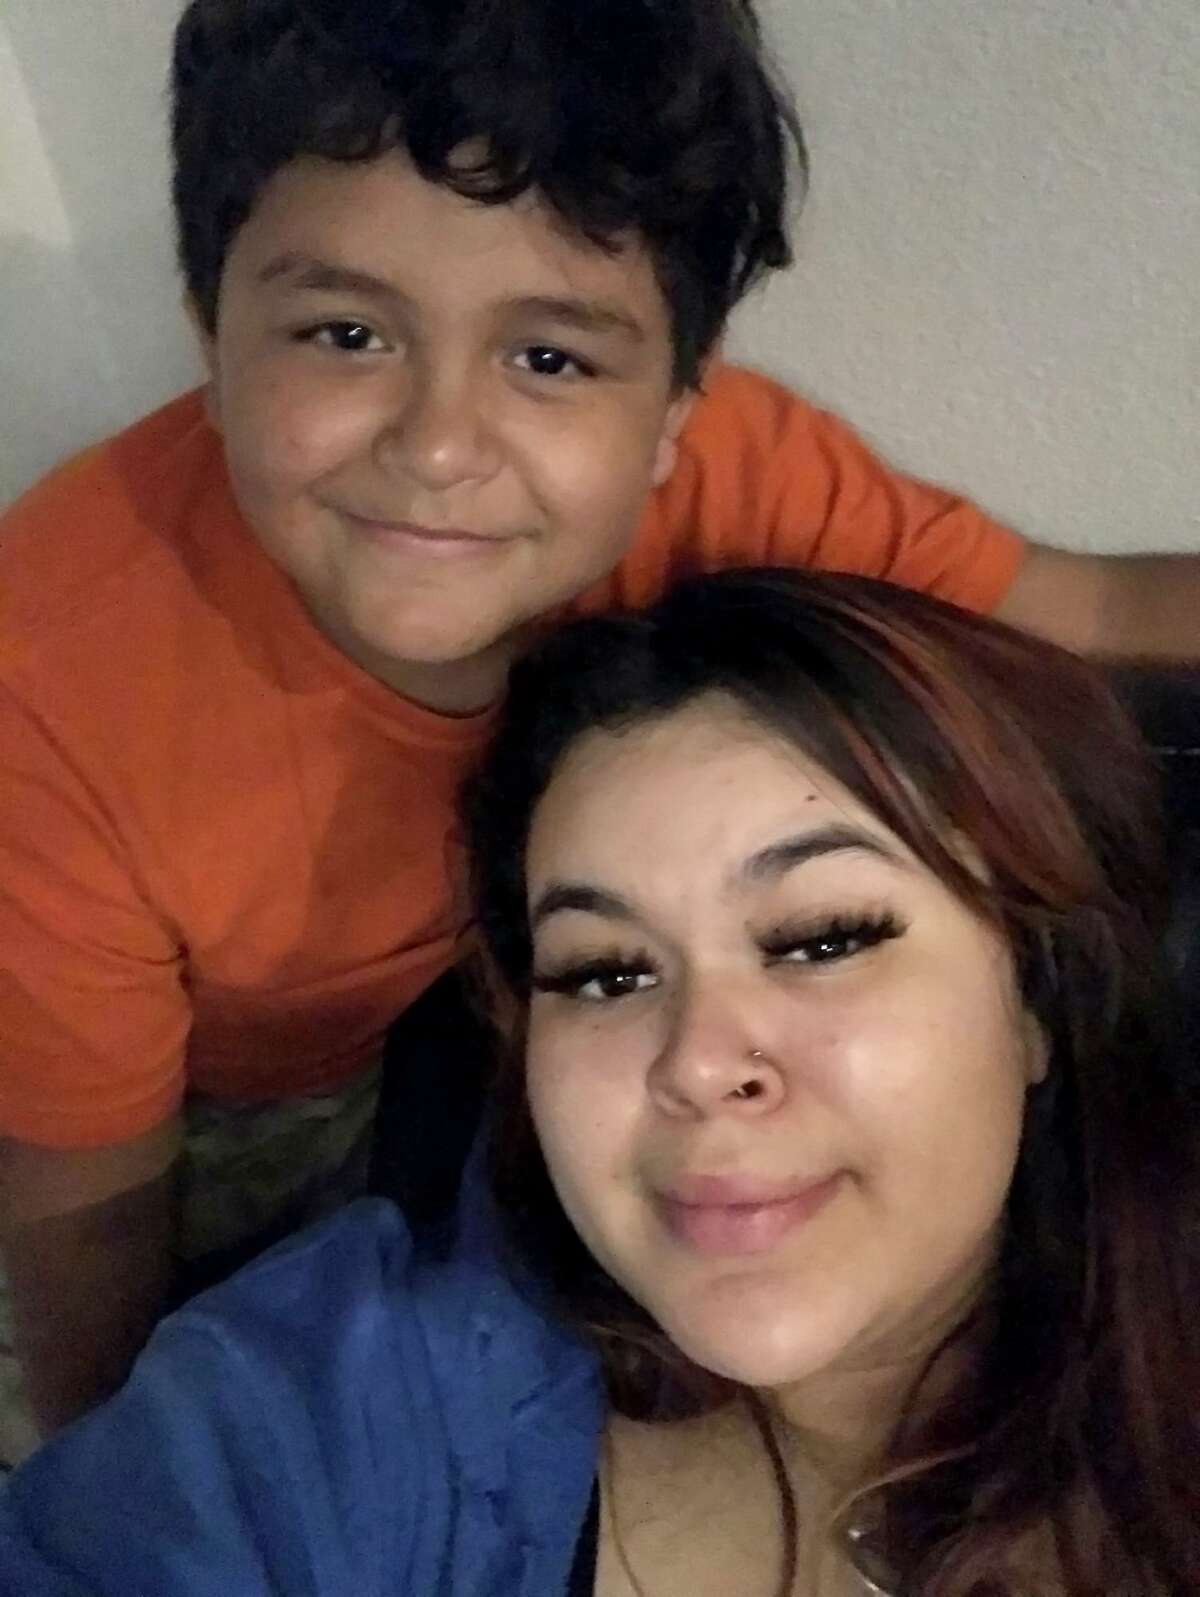 Jayden Rico, 10, shown with his cousin Shantel Barrera, was shot Monday night, Feb. 22, 2021, at a West Side apartment complex in the 1700 block of South Hamilton Avenue. San Antonio police have said the shooting was accidental.